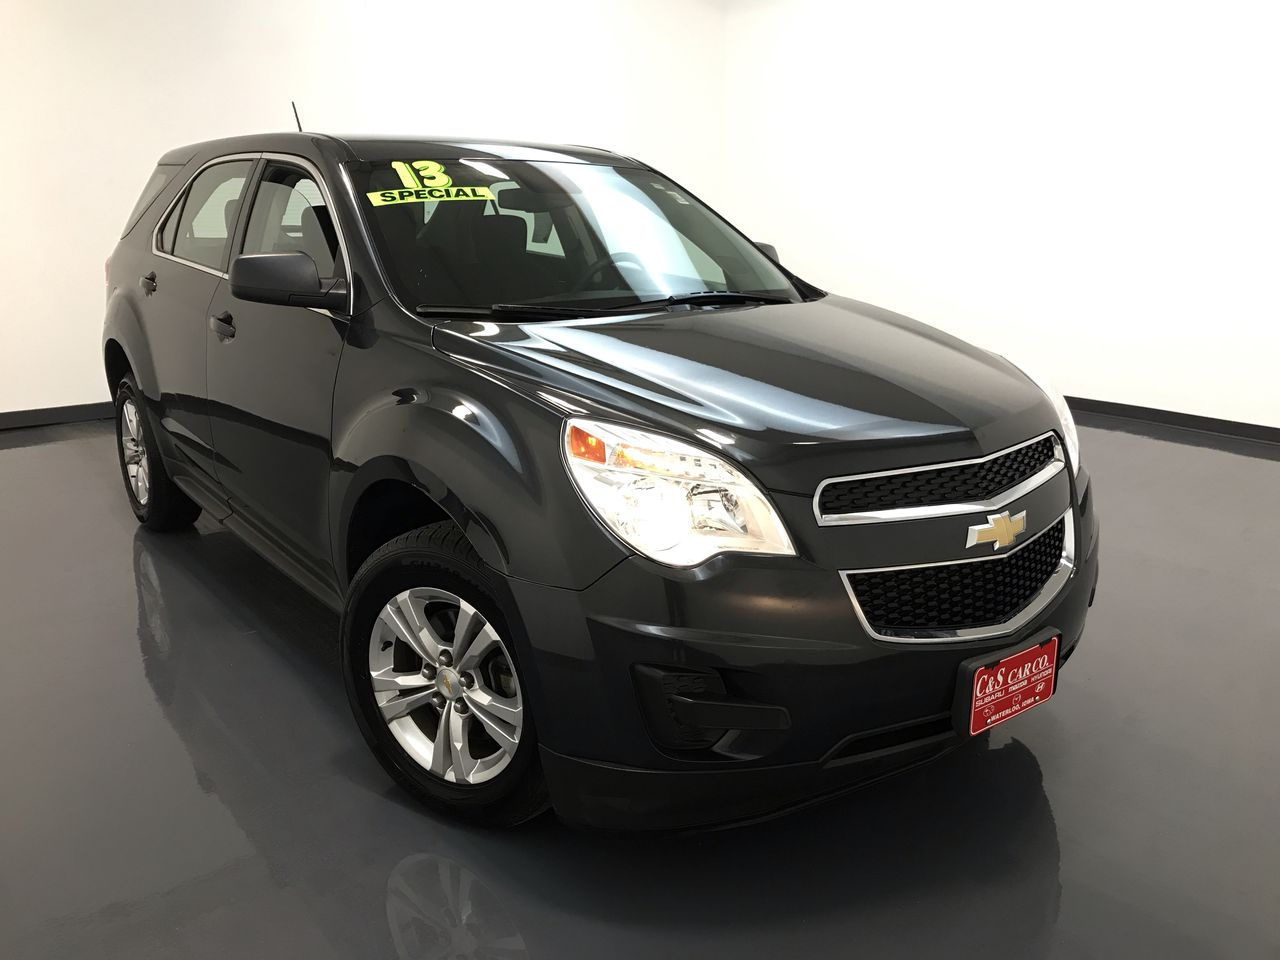 2013 Chevrolet Equinox  - C & S Car Company